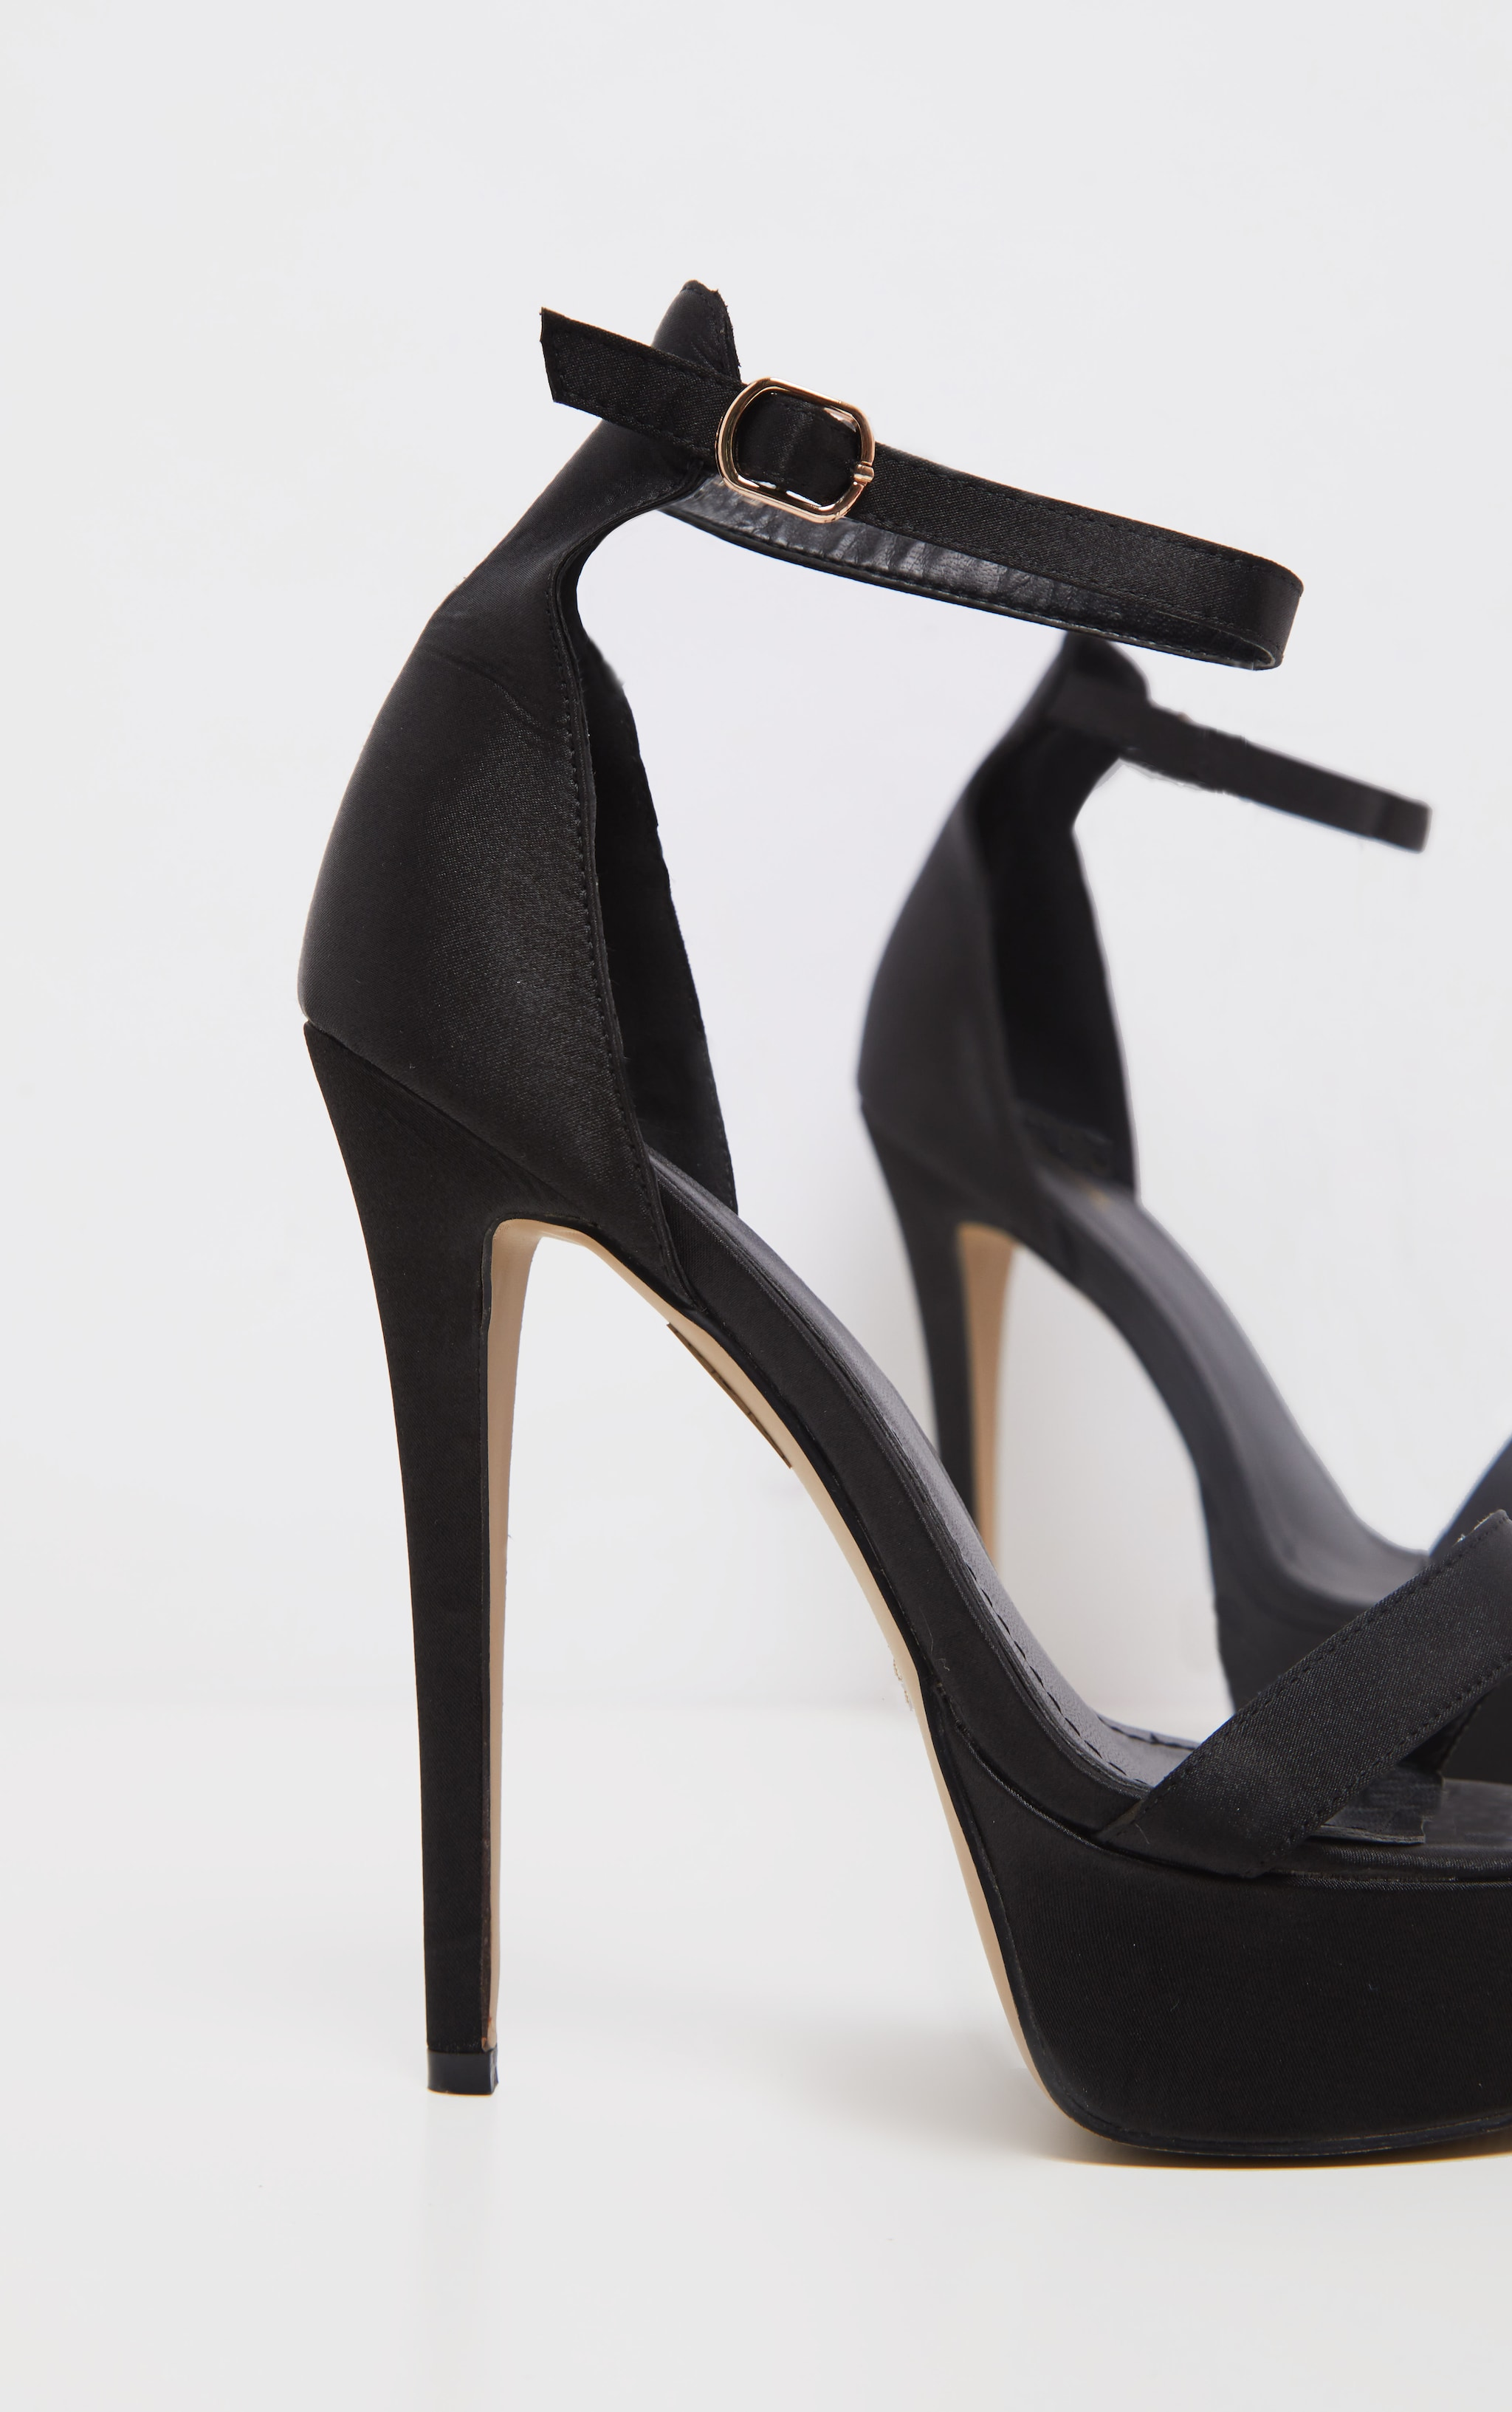 Black Satin Single Strap Platform Heels 4